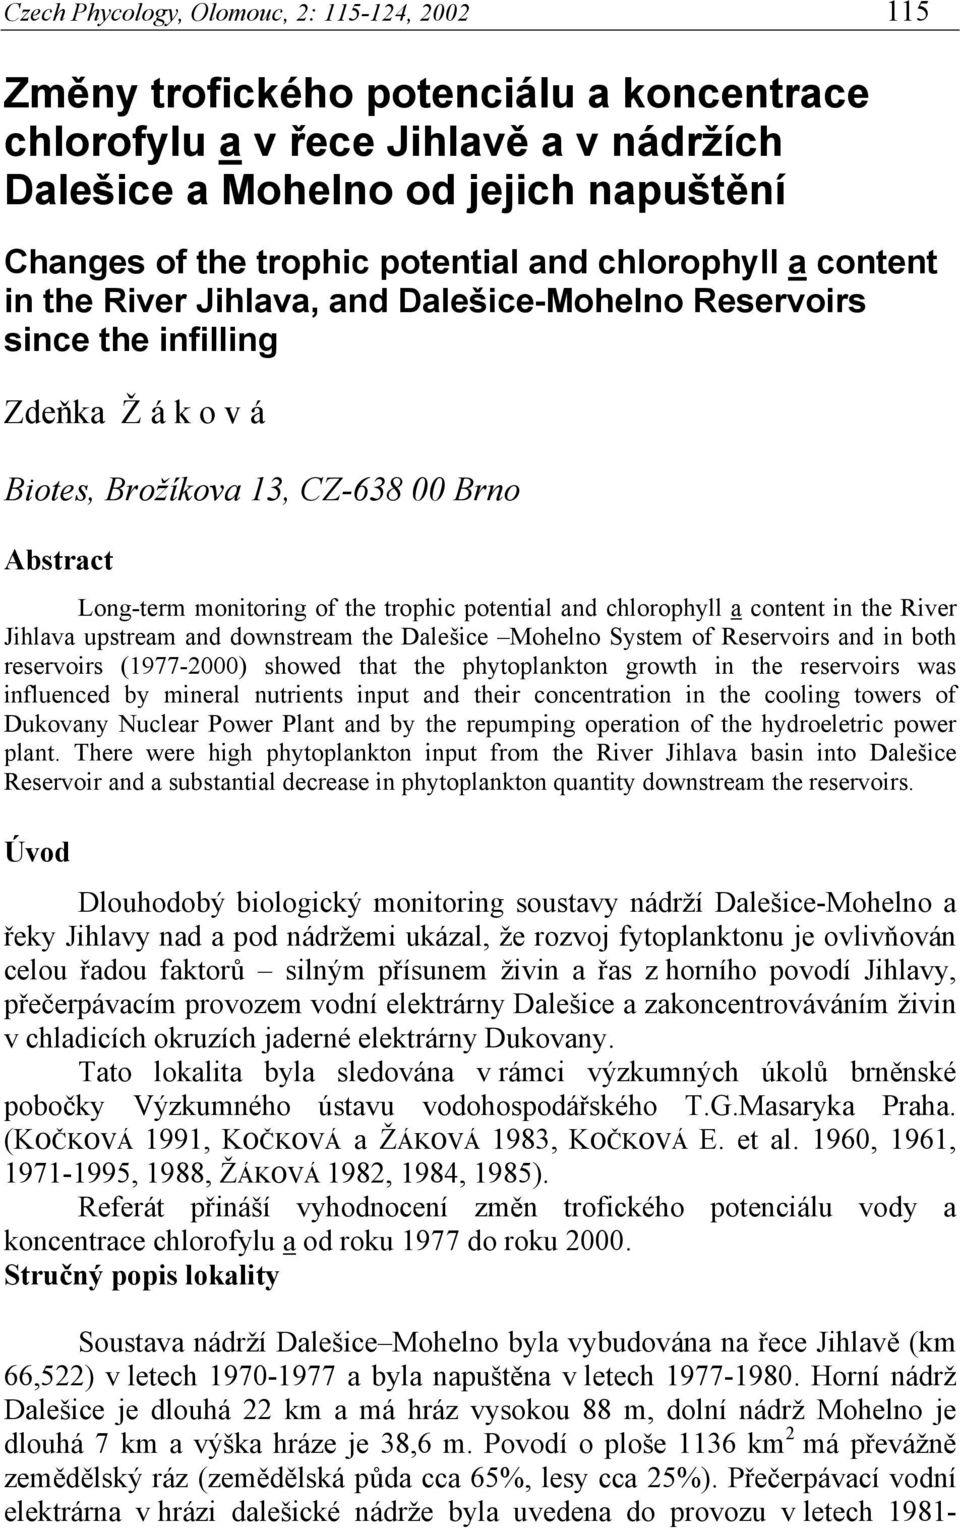 potential and chlorophyll a content in the River Jihlava upstream and downstream the Dalešice Mohelno System of Reservoirs and in both reservoirs (1977-) showed that the phytoplankton growth in the